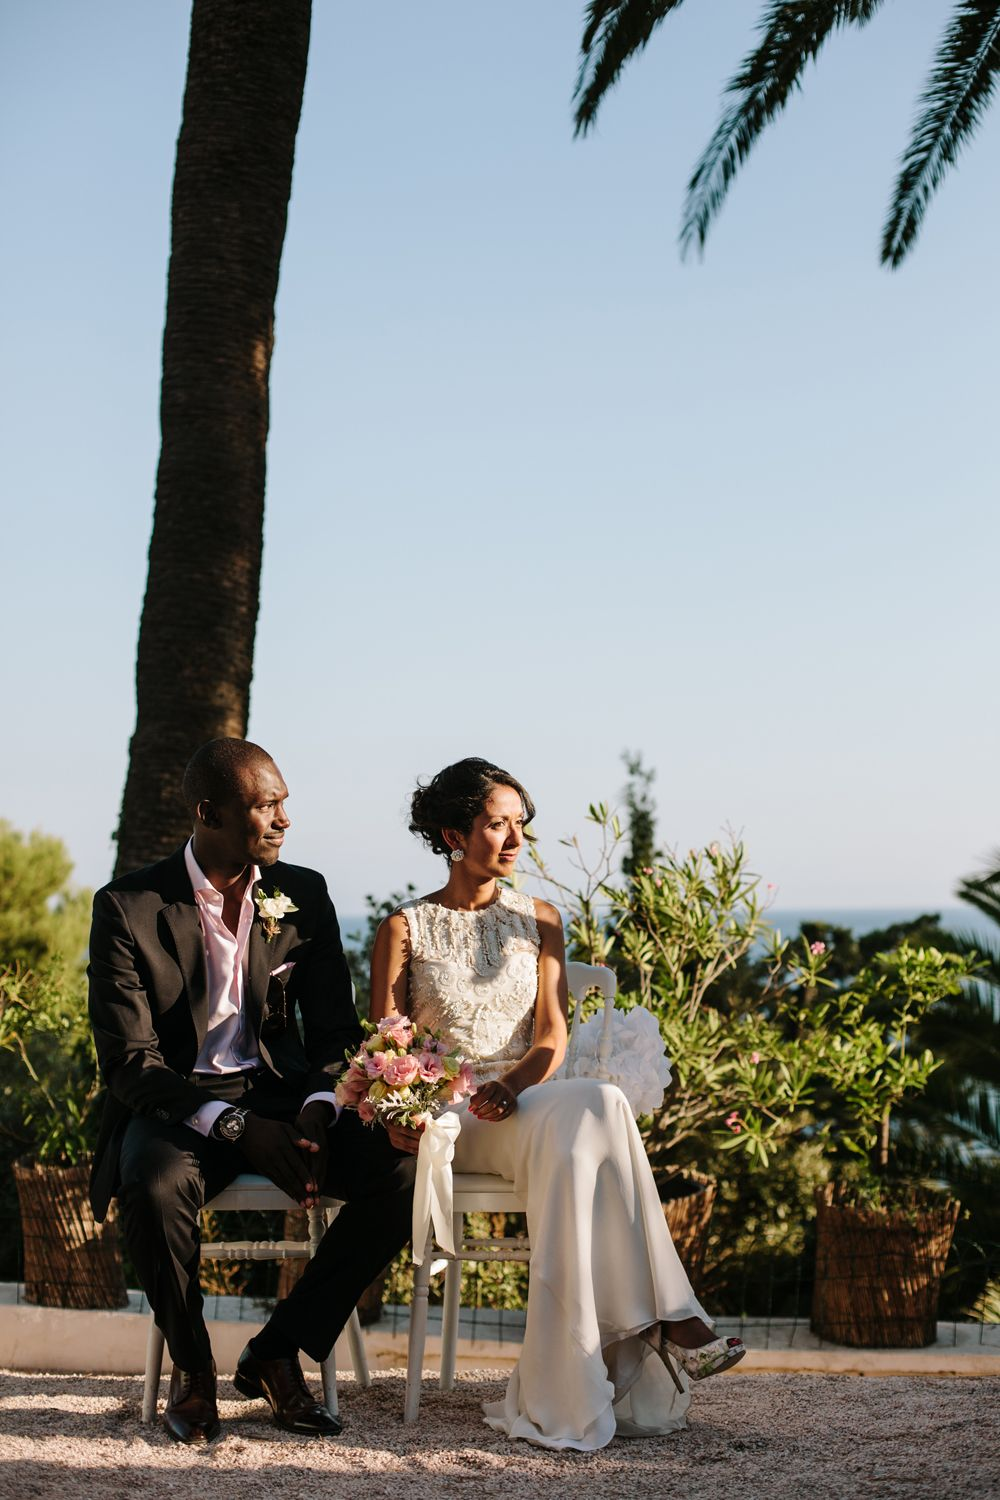 Wedding ceremony outdoor in Residence Cap Brun, front of the sea www.mariagedanslair.com